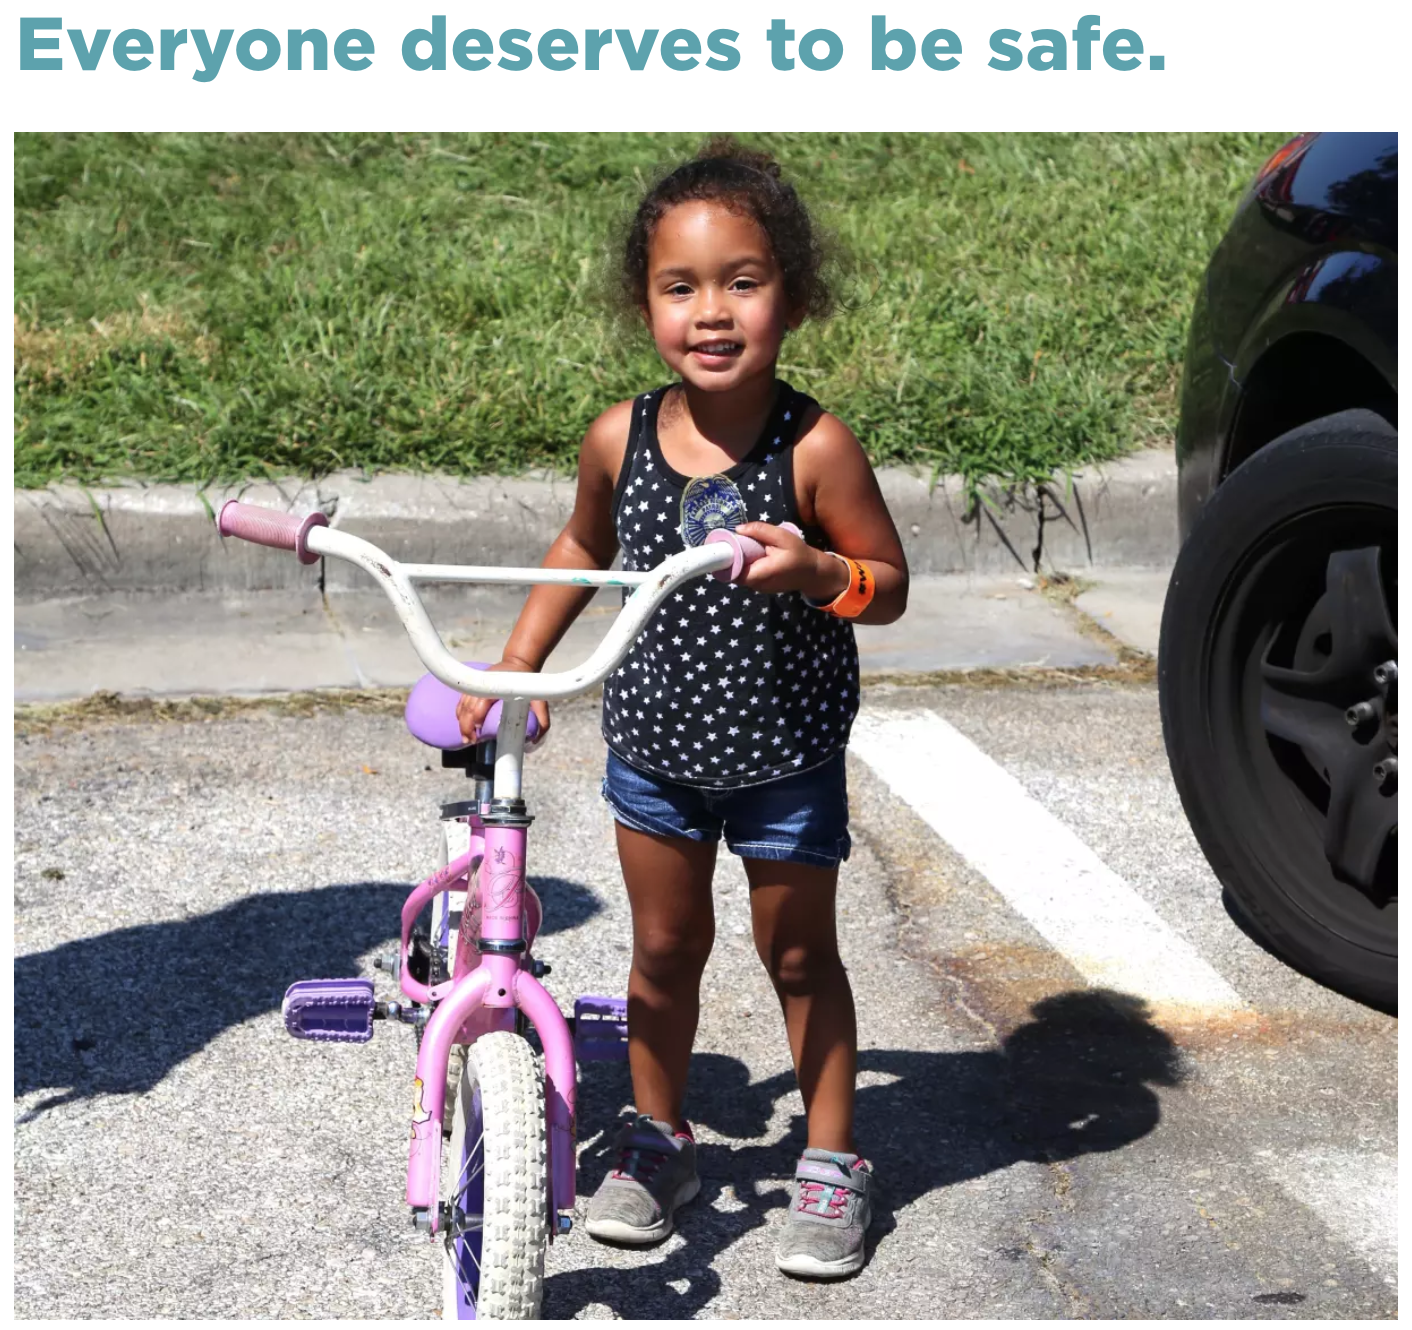 Wyandotte County's goal for violence prevention